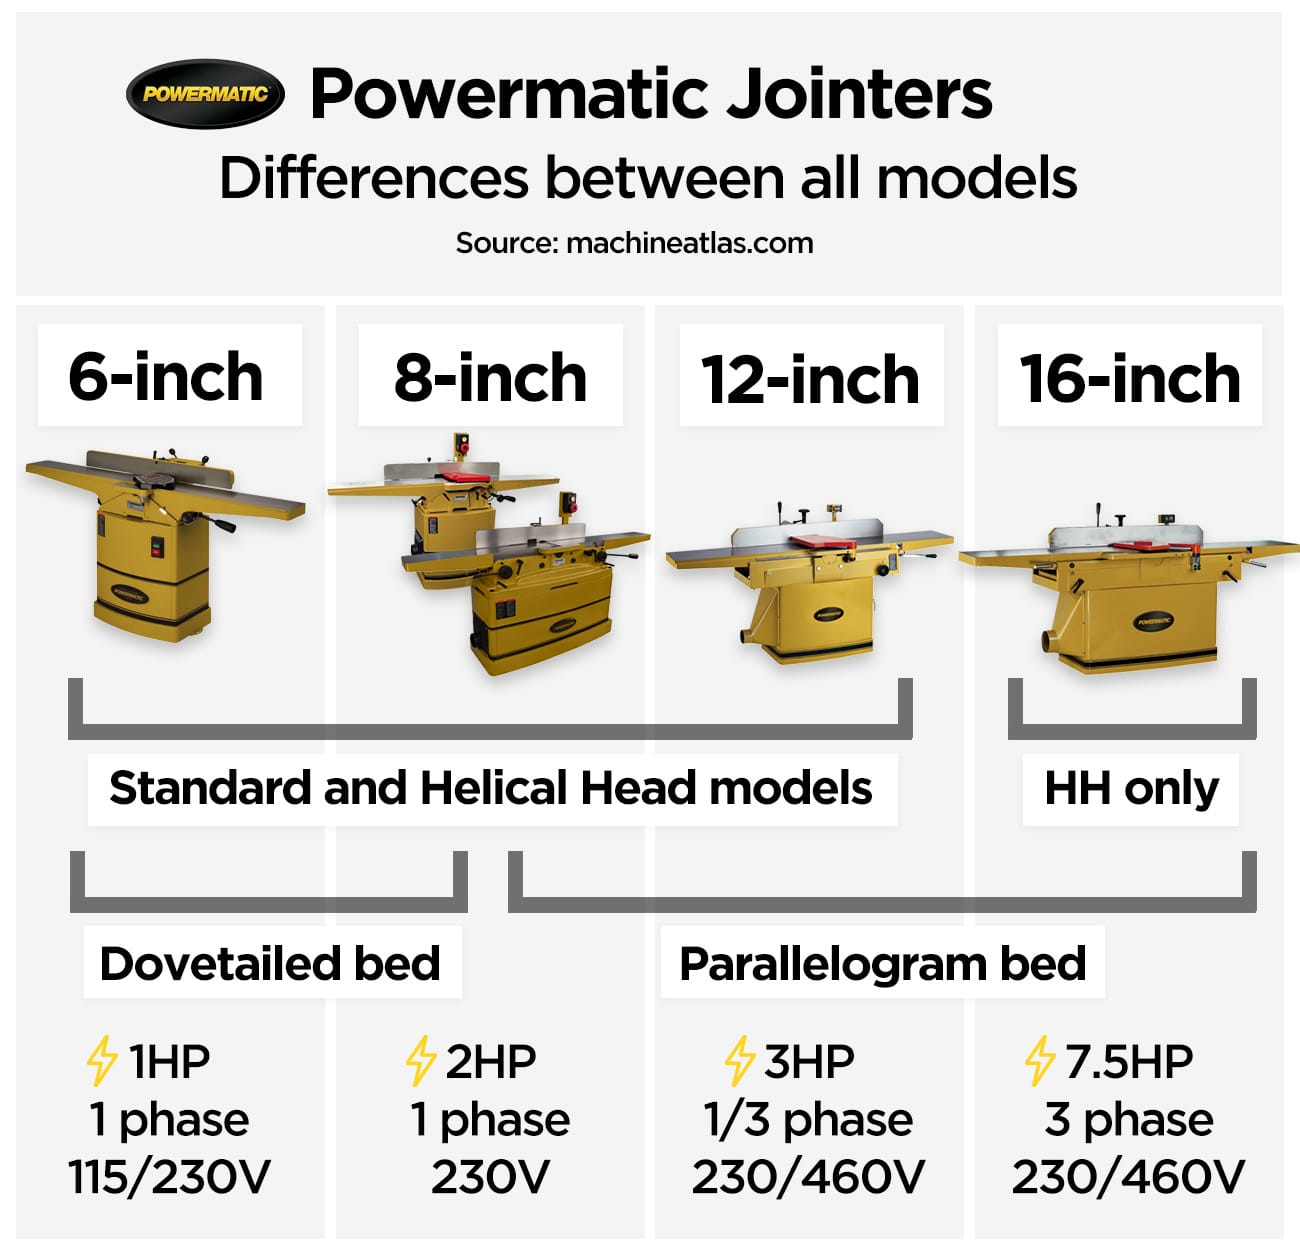 Powermatic Jointers Infographic